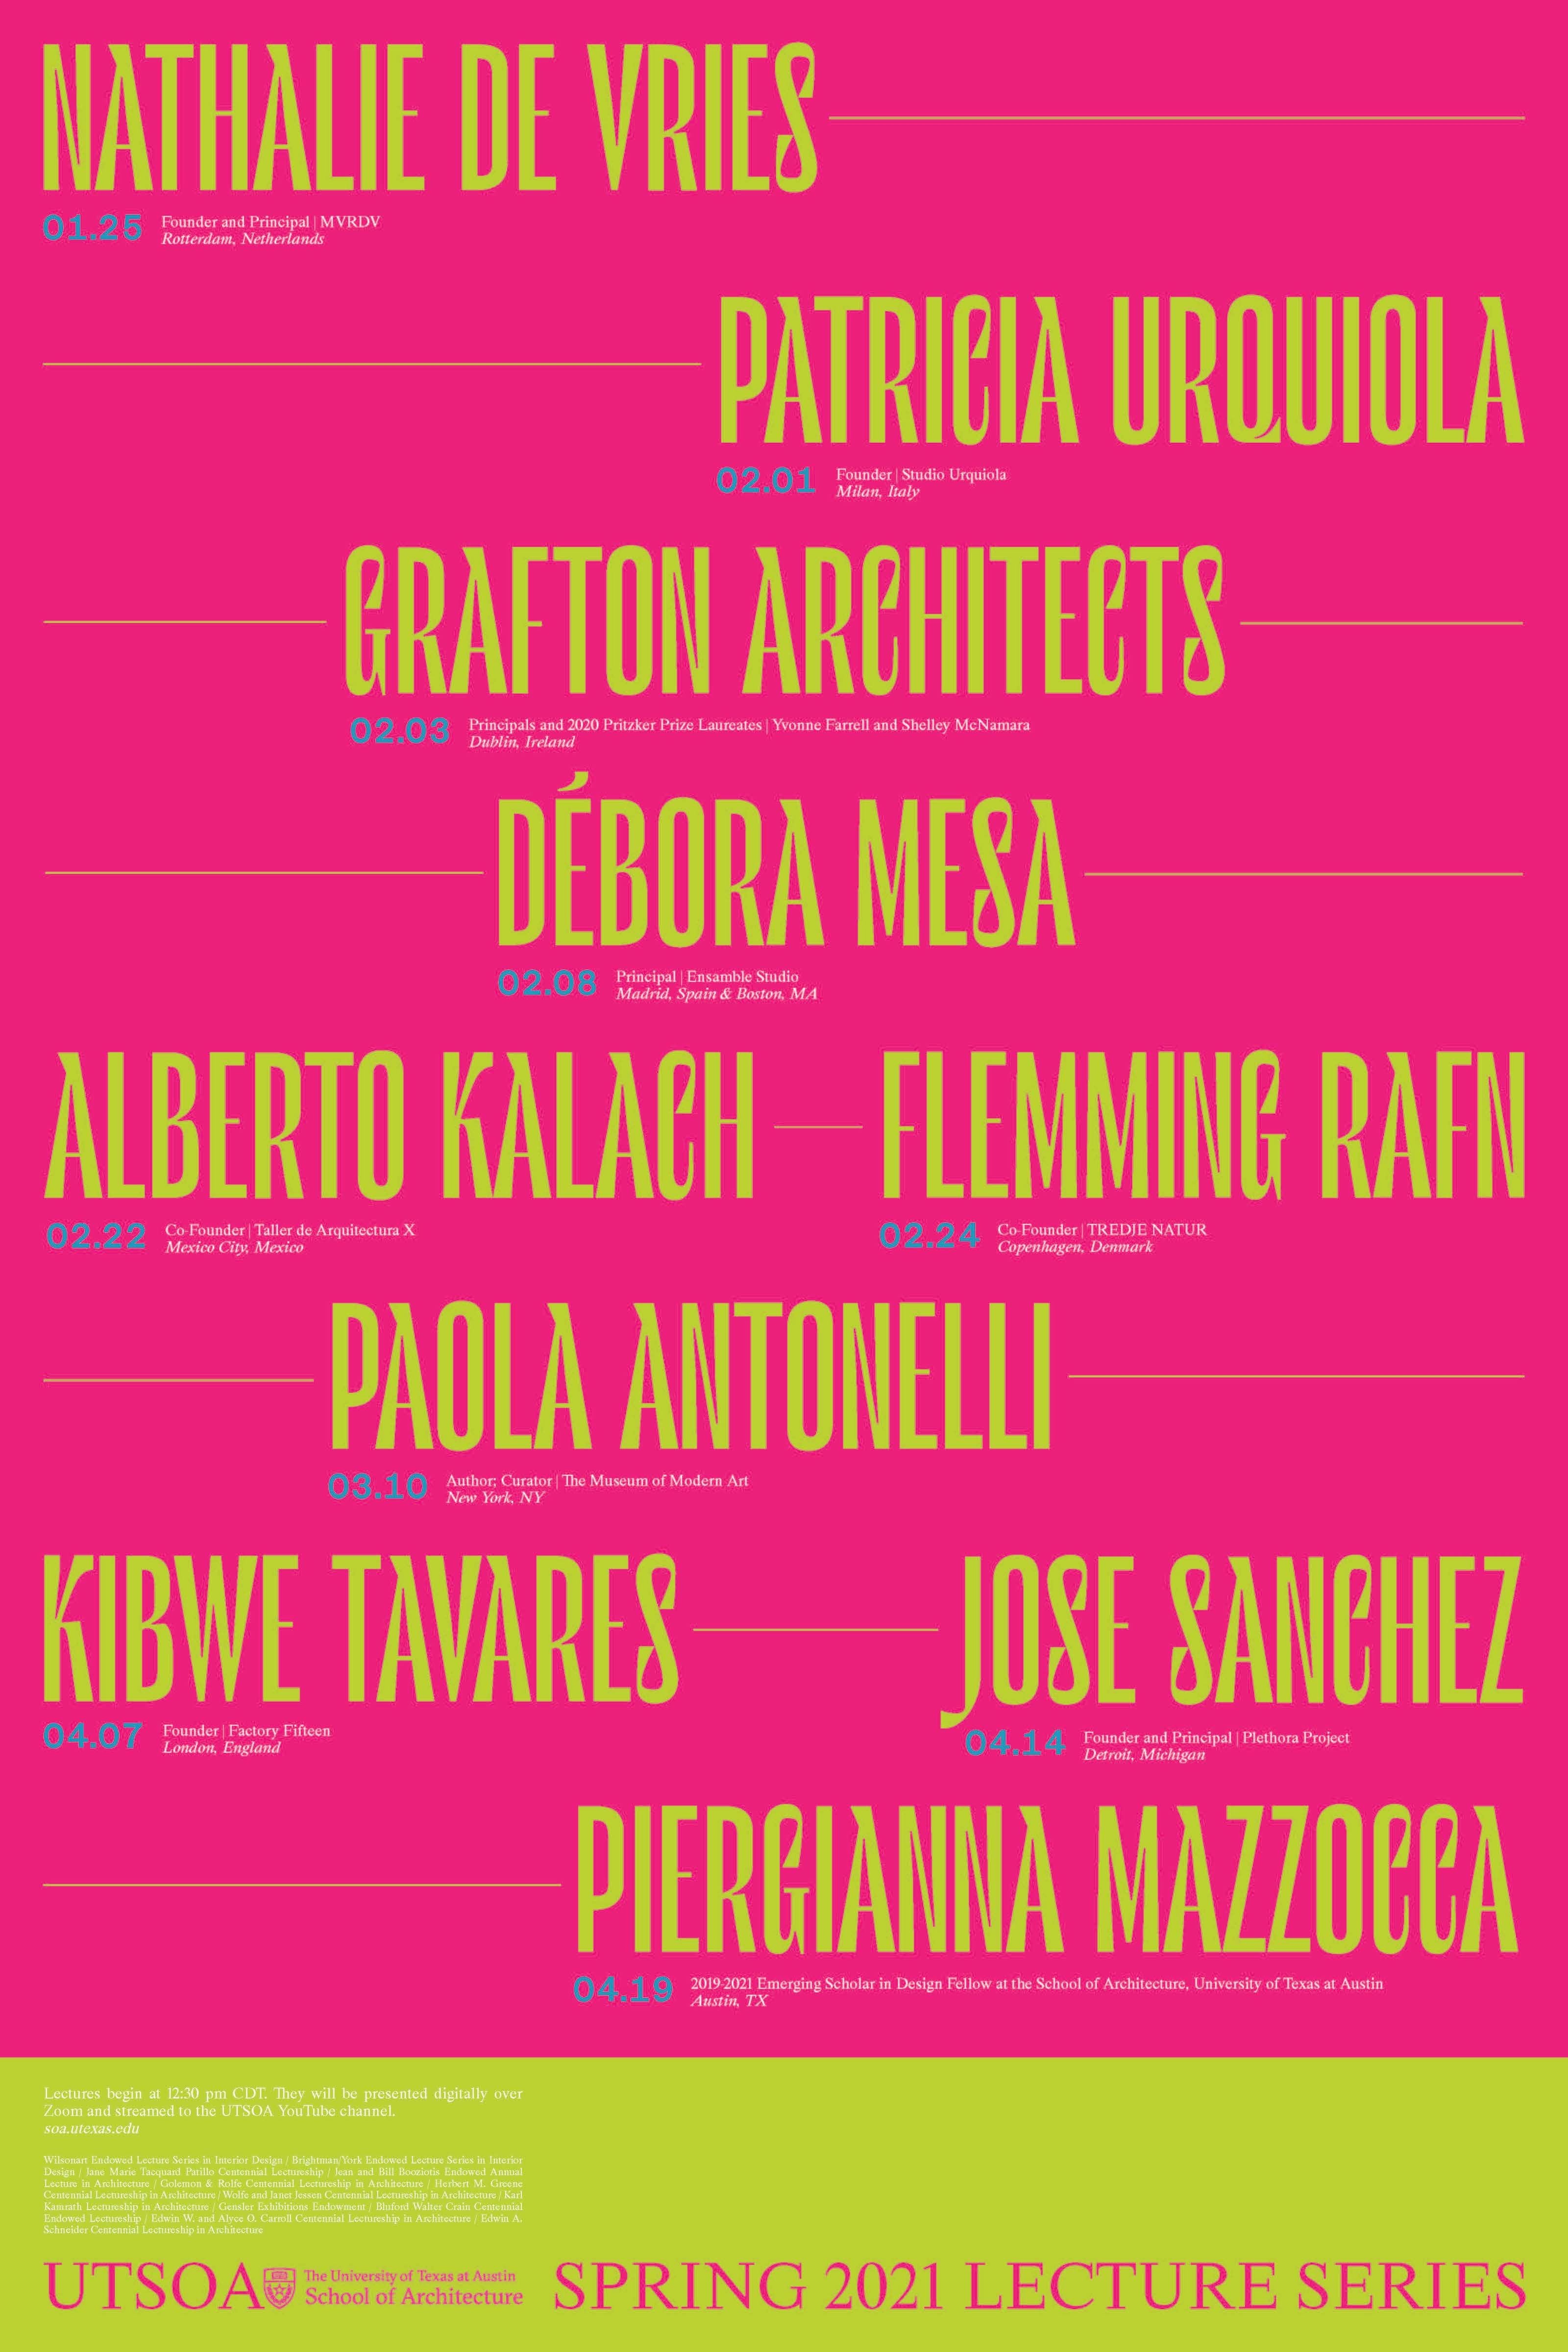 Pink and green poster announcing the Spring 2021 Lecture Series at The University of Texas at Austin School of Architecture